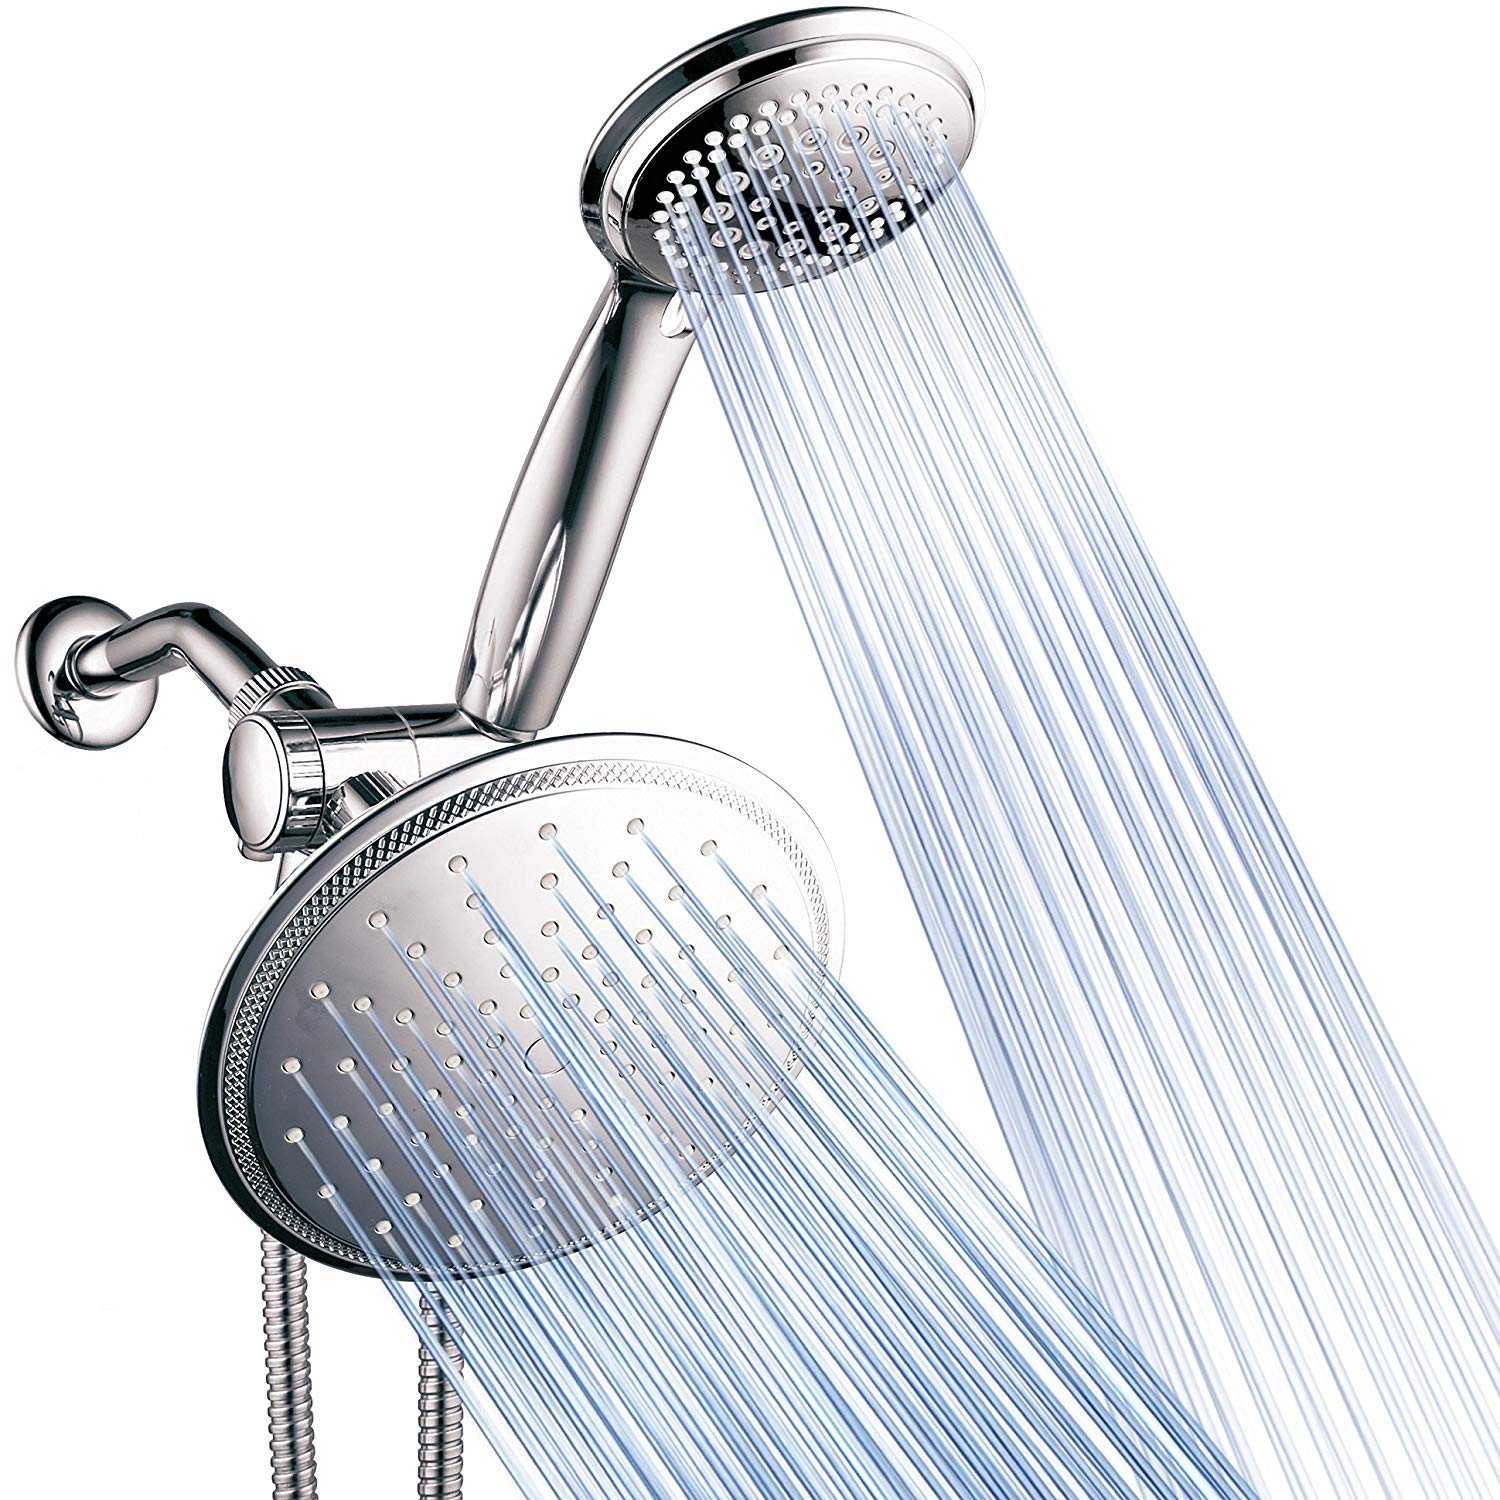 DreamSpa 1432 3-way Rainfall Dual Showerhead